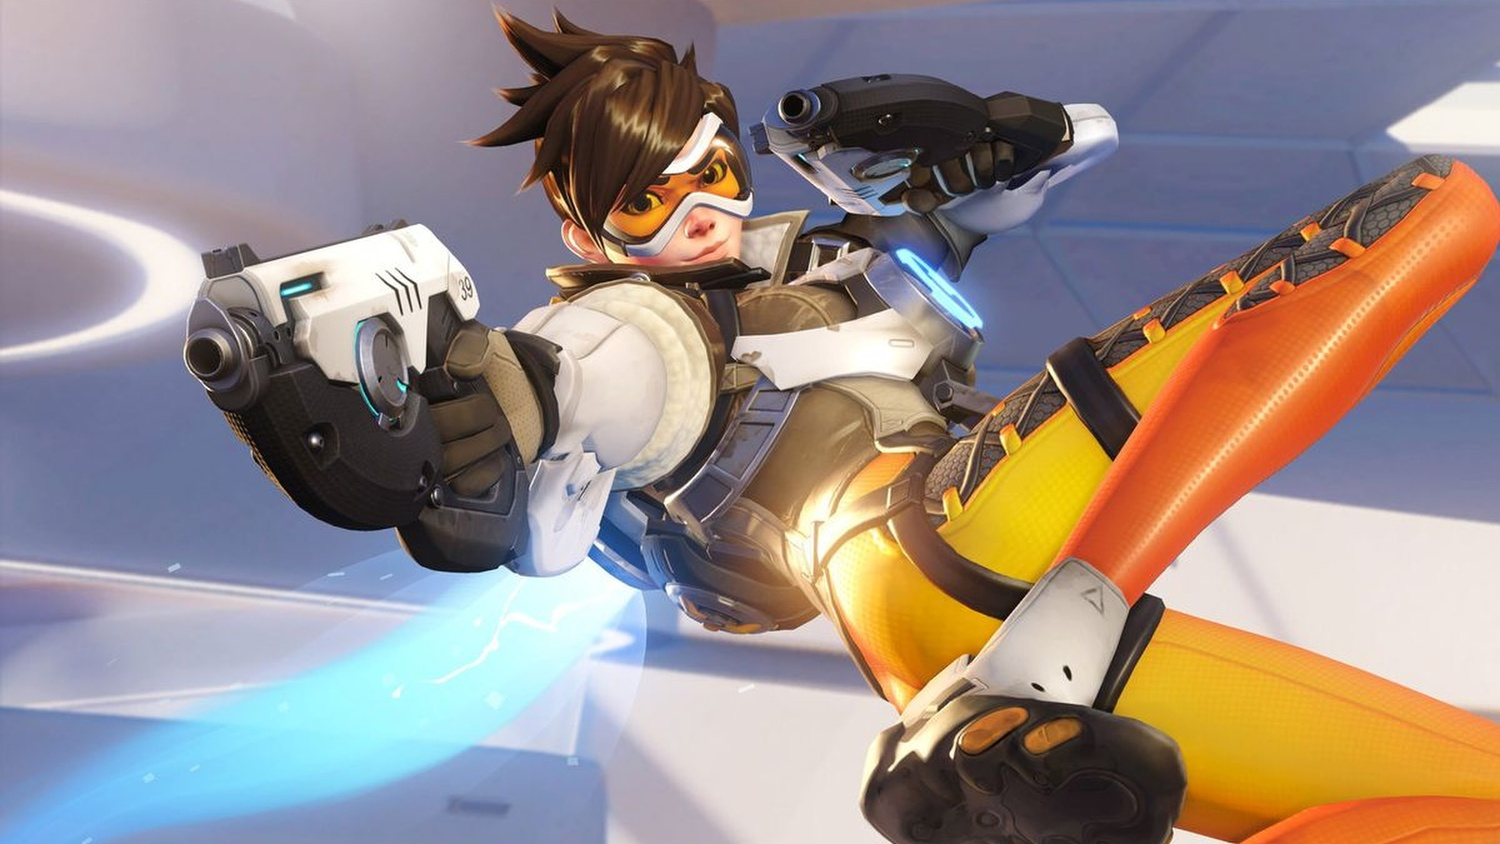 Getting Overwatch on Switch? You should probably just buy from the eShop